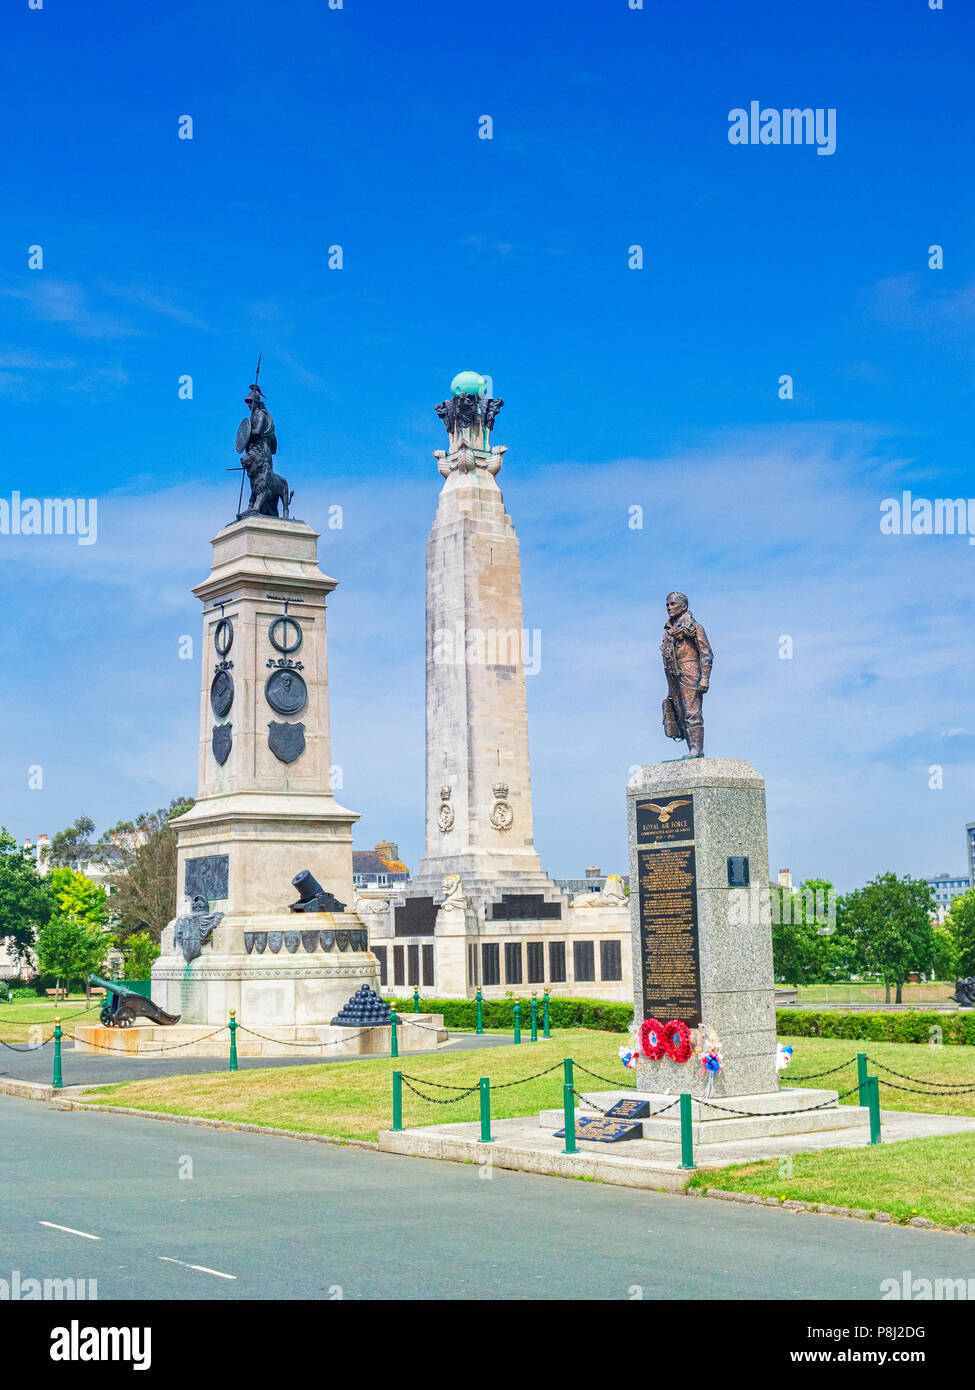 8 June 2018: Plymouth, Devon, UK - Monuments or war memorials on Plymouth Hoe - left to right, the Armada Monument, the Royal Navy Monument and the Ro - Stock Image